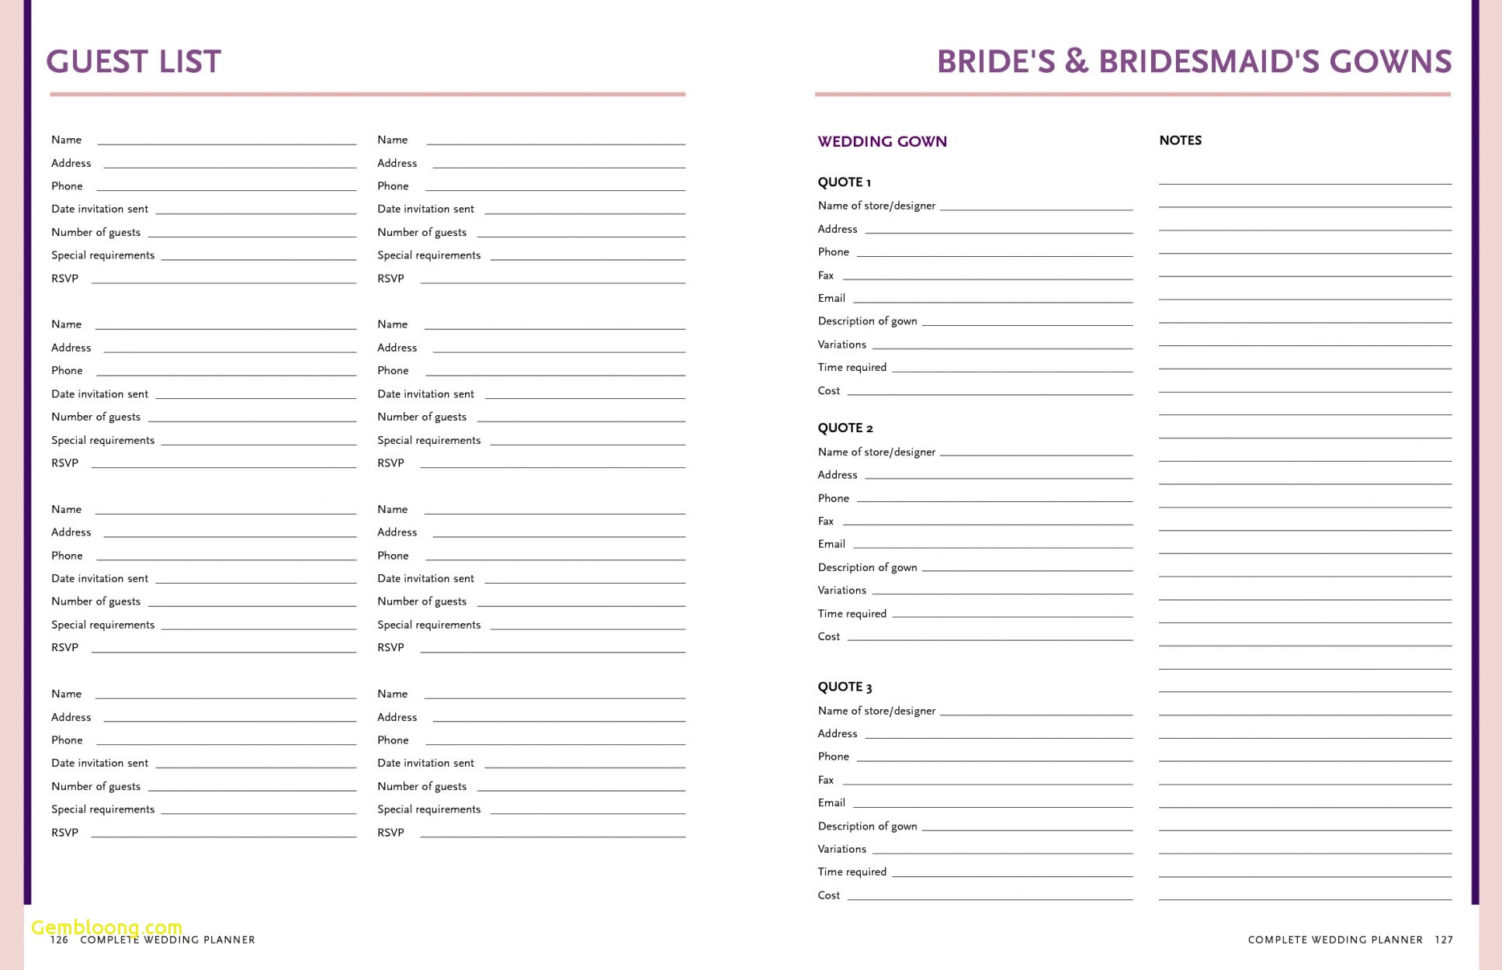 Wedding Rsvp Tracker Spreadsheet Regarding Wedding Rsvp Tracker 20 Beautiful Wedding Rsvp Tracker Spreadsheet